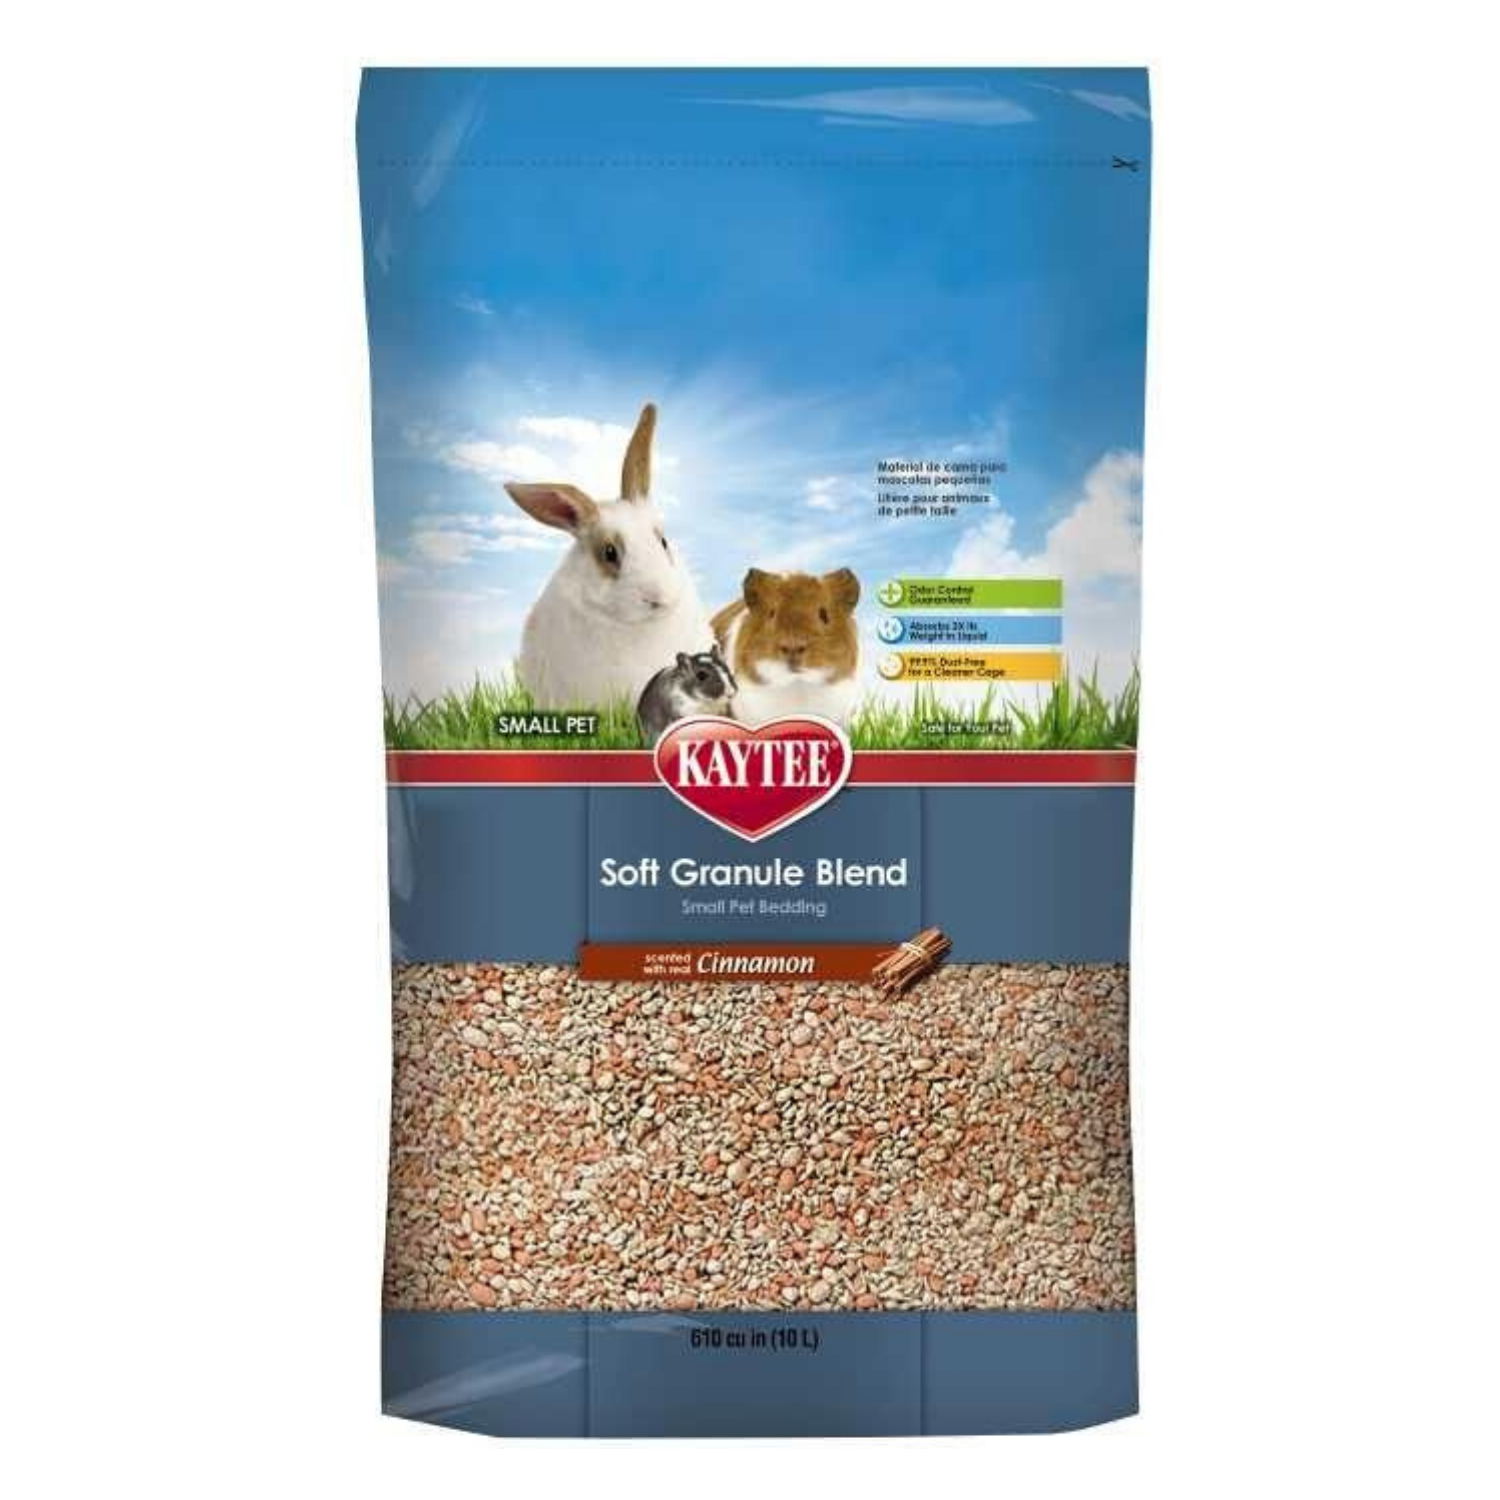 [DISCONTINUED] Kaytee Soft Granule Blend (Cinnamon) - 10L